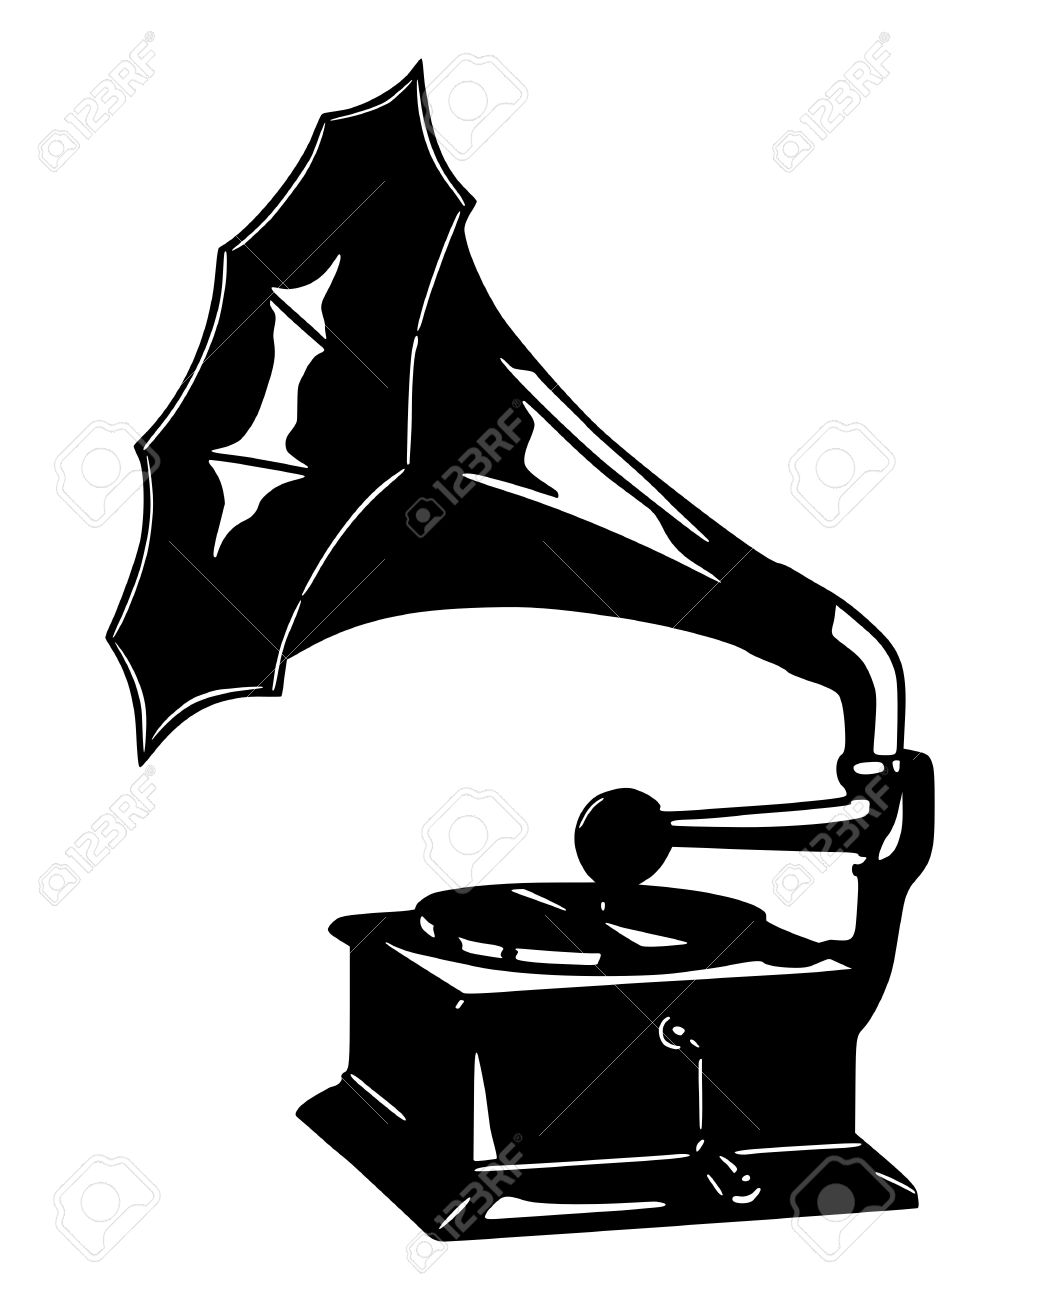 gramophone royalty free cliparts vectors and stock illustration image 7824567 gramophone